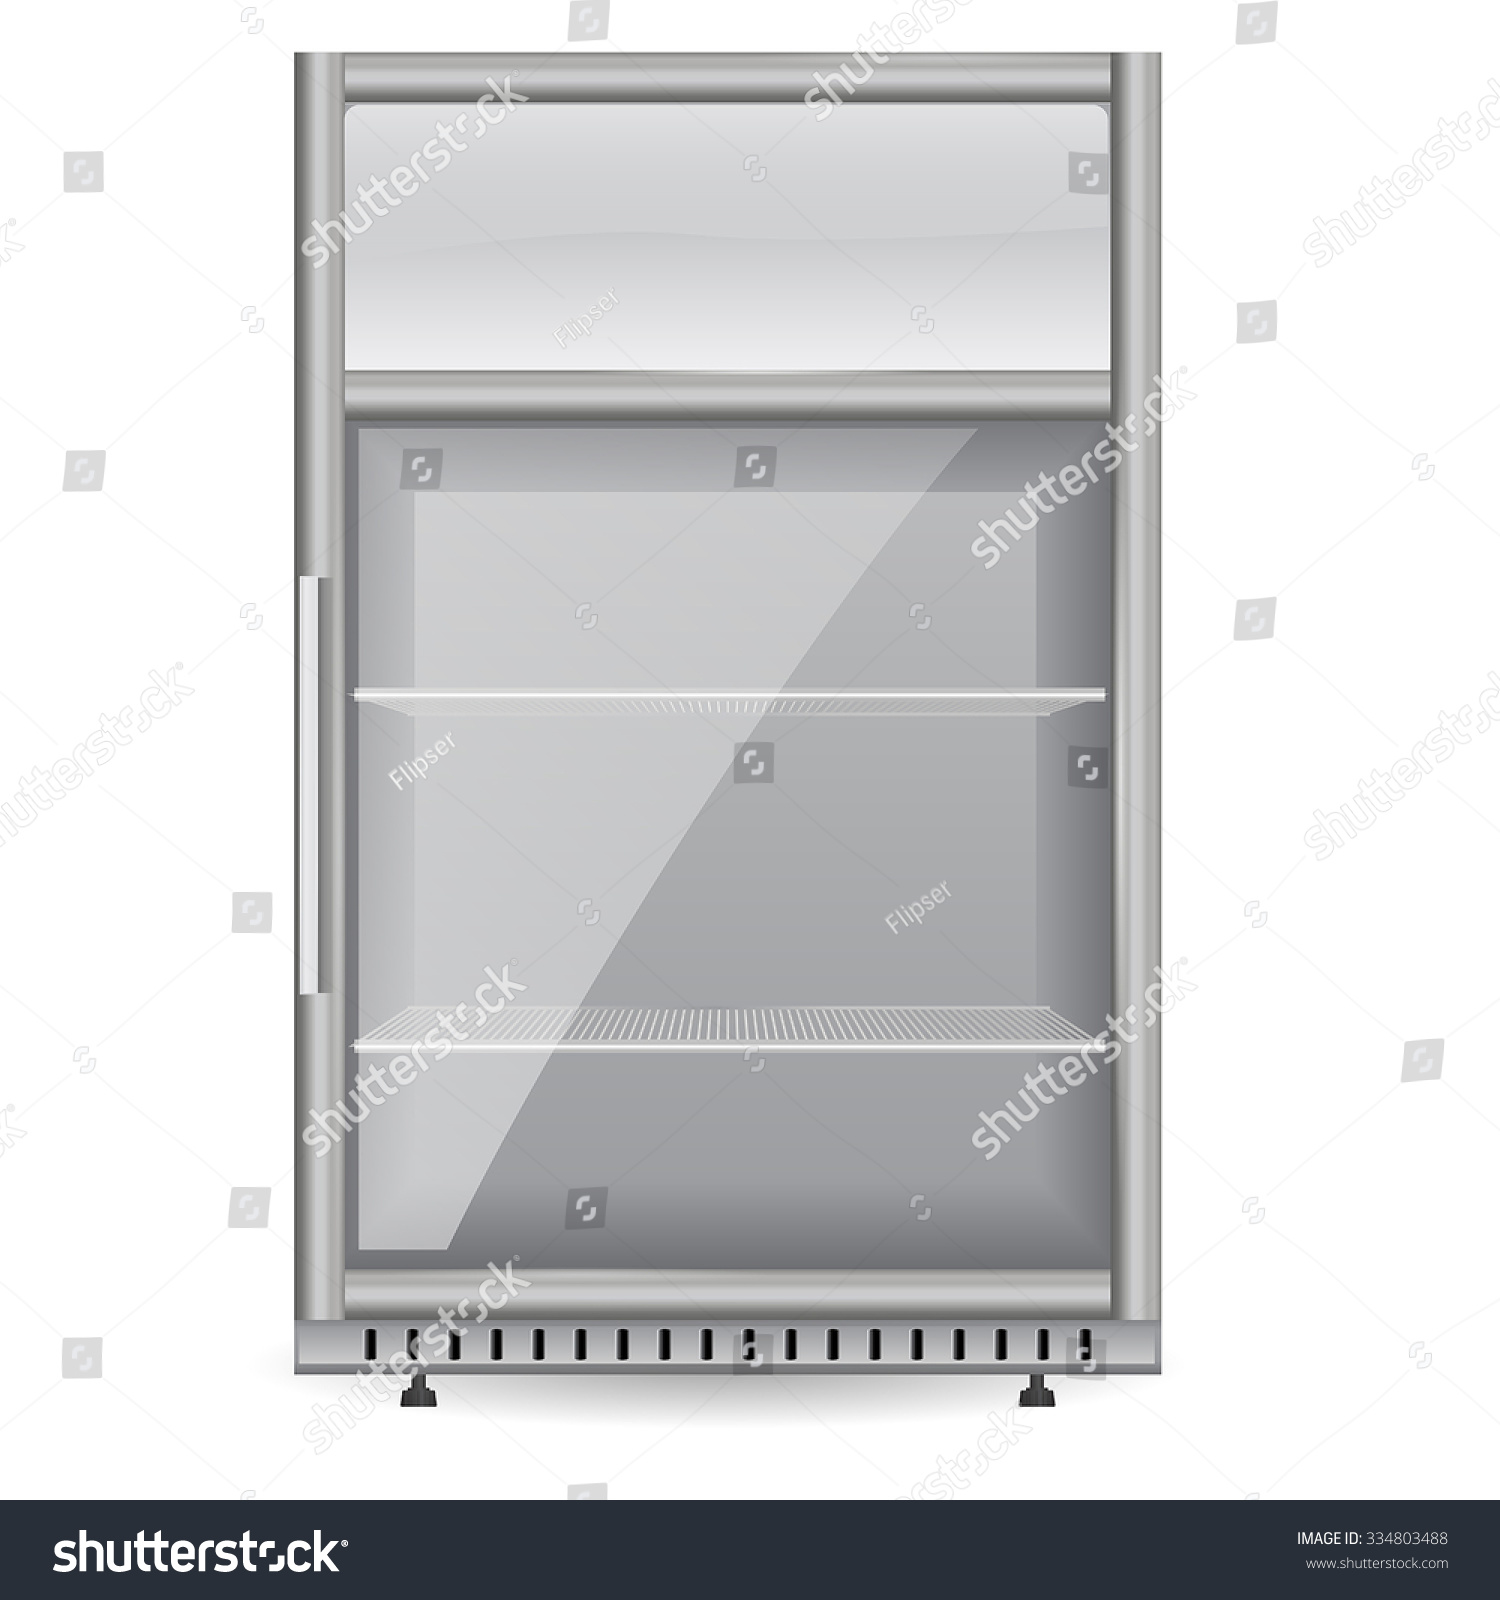 fridge drink with glass door mini display cooler vector isolated on white background